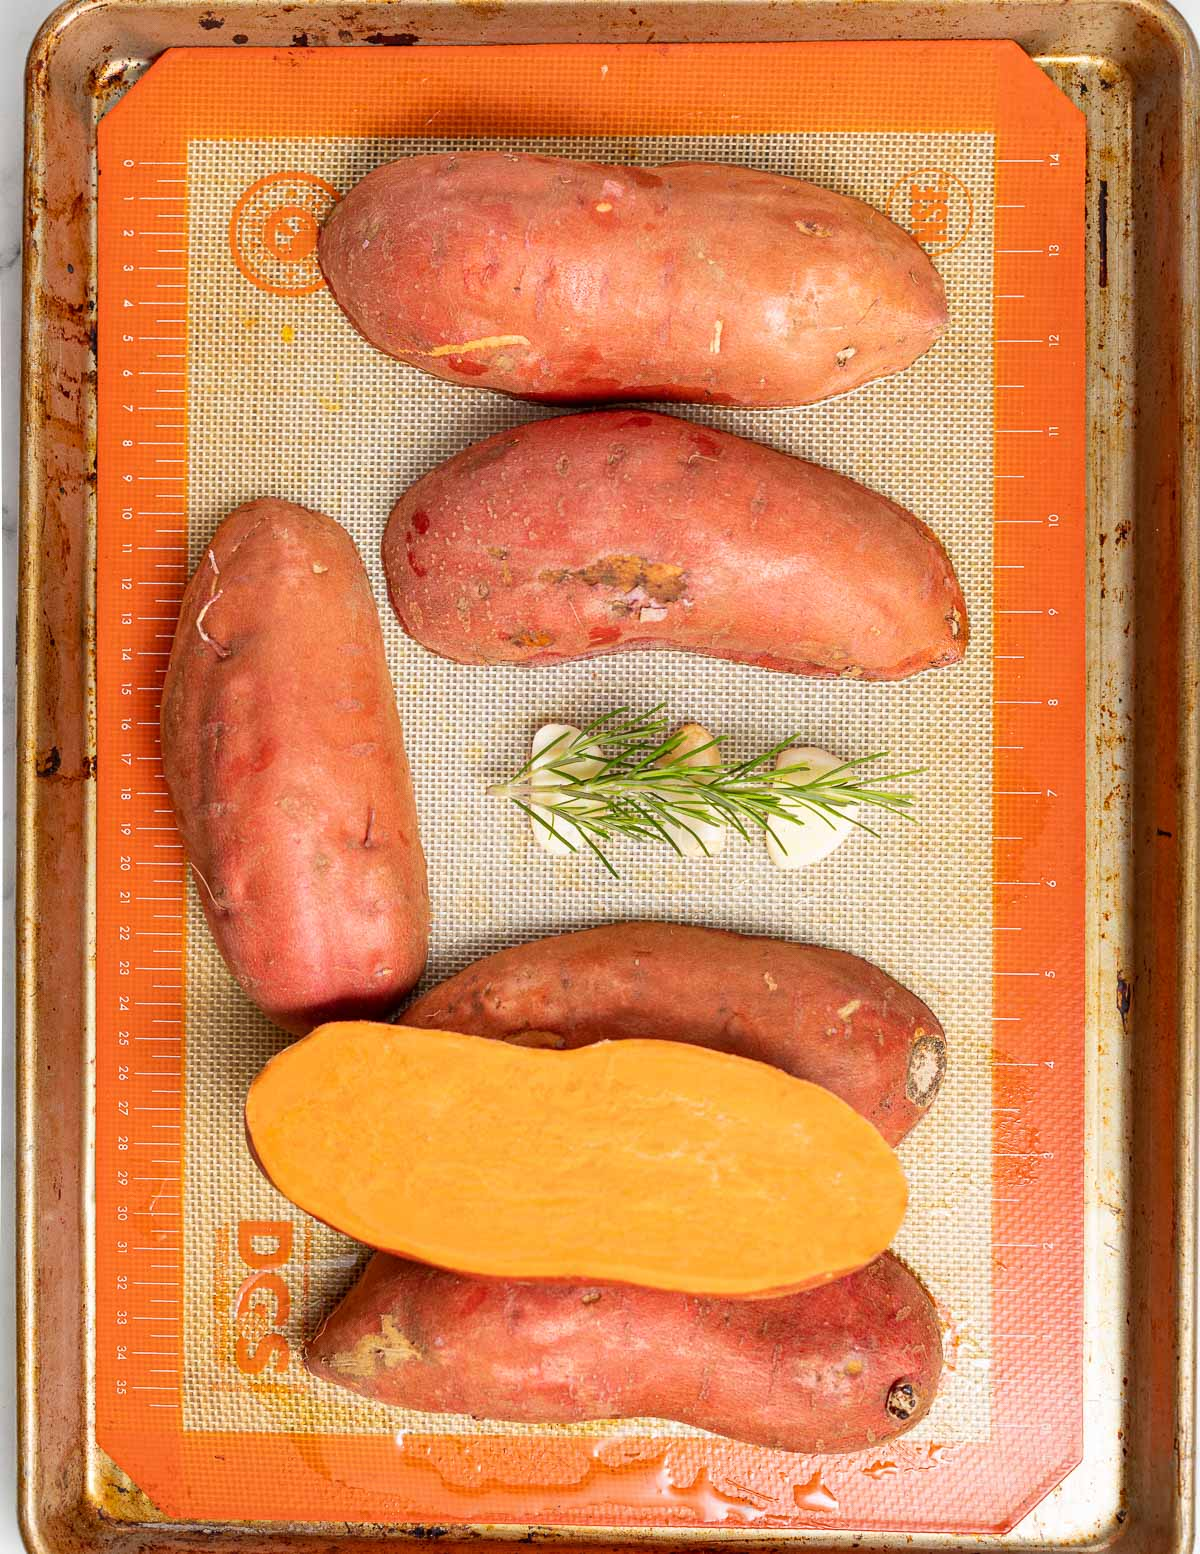 halfed sweet potatoe son a tray with rosemary and garlic